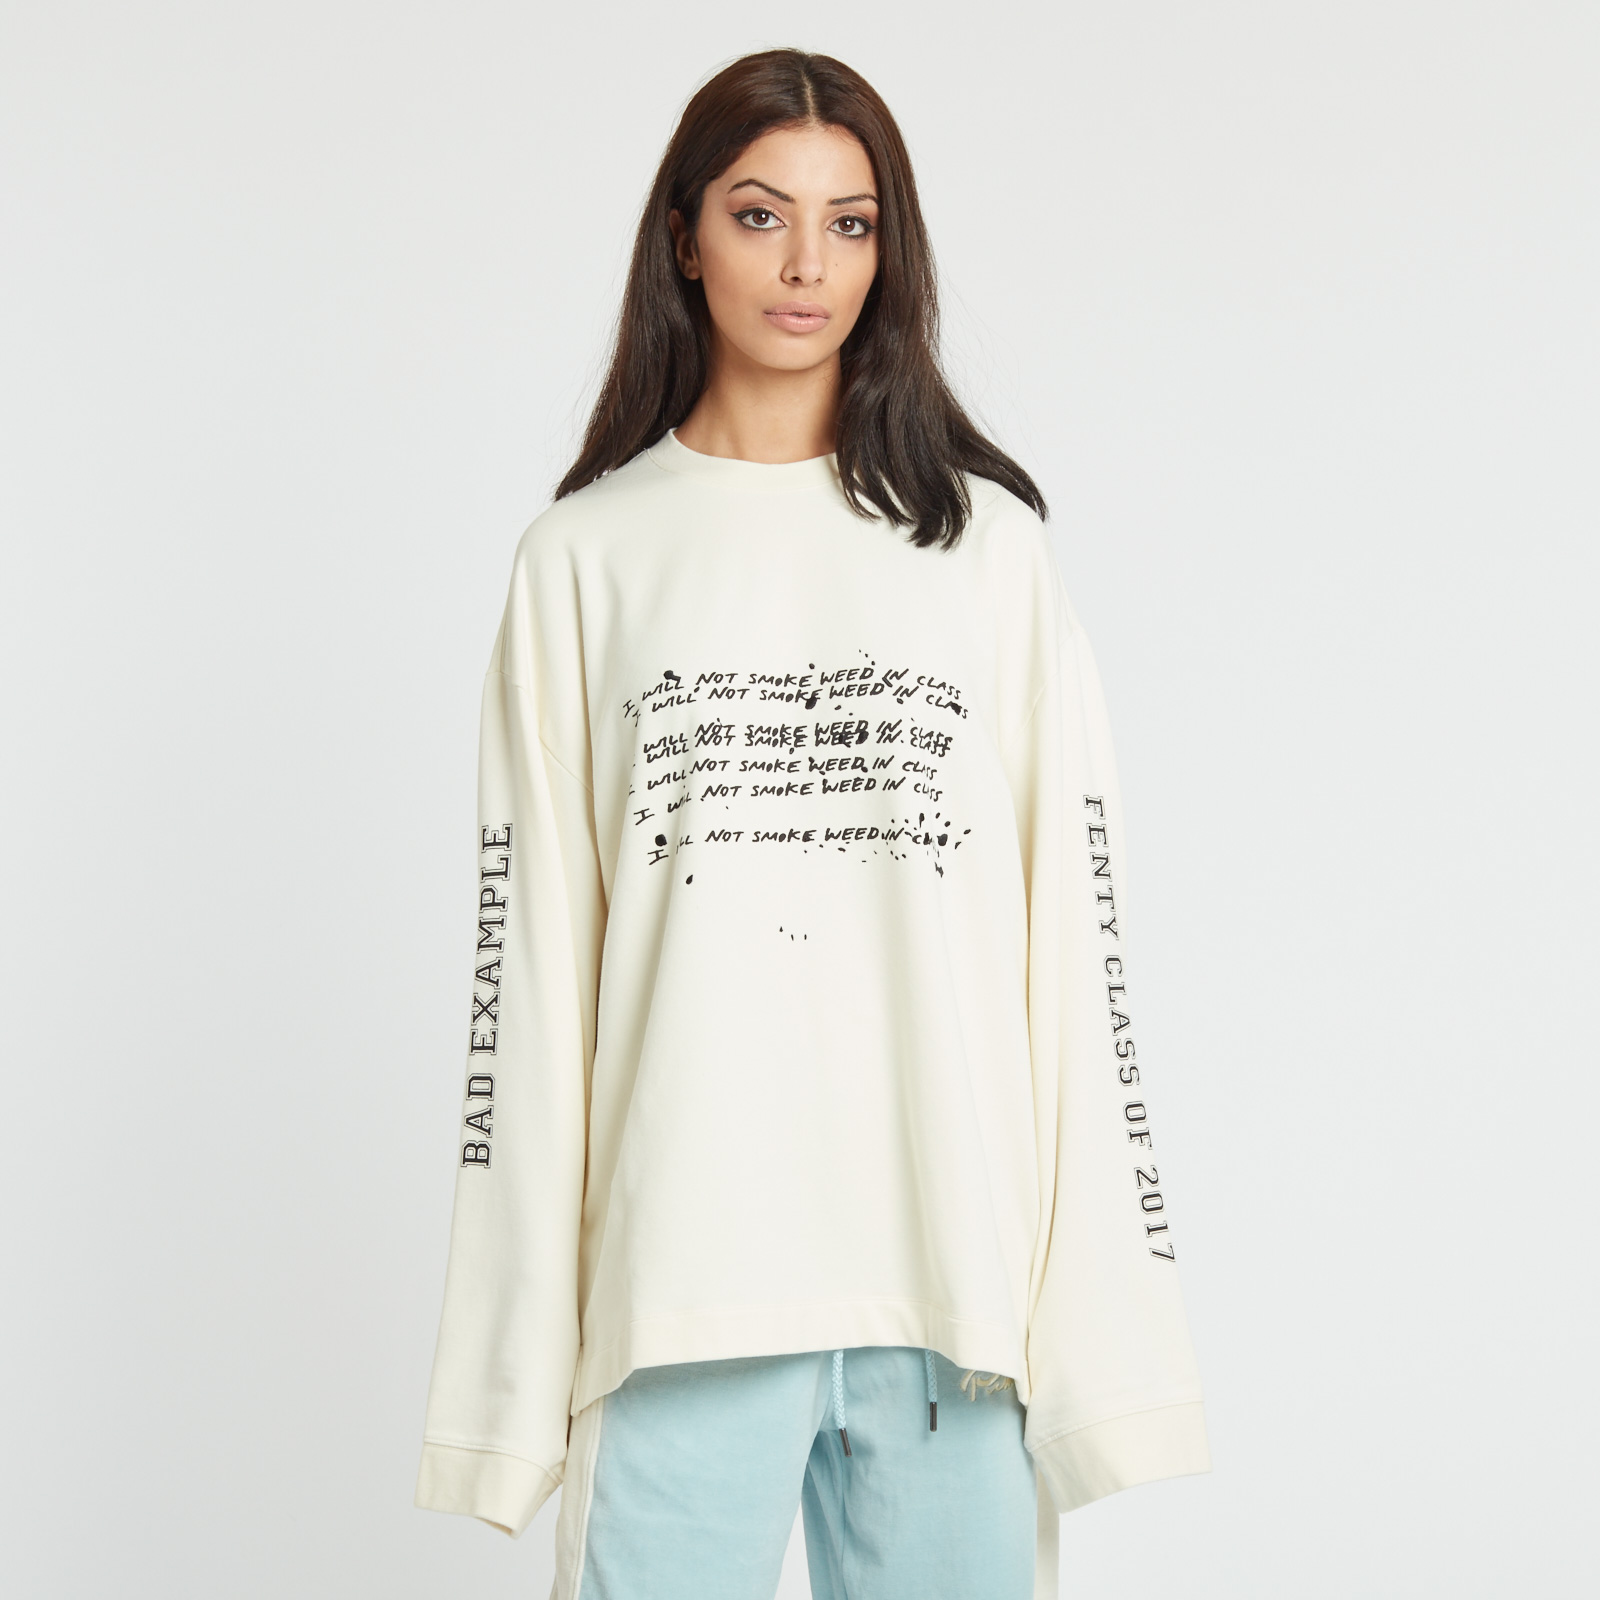 c9e3d707c4d4 Puma LS Graphic Crew Neck T-Shirt - 575871-02 - Sneakersnstuff ...